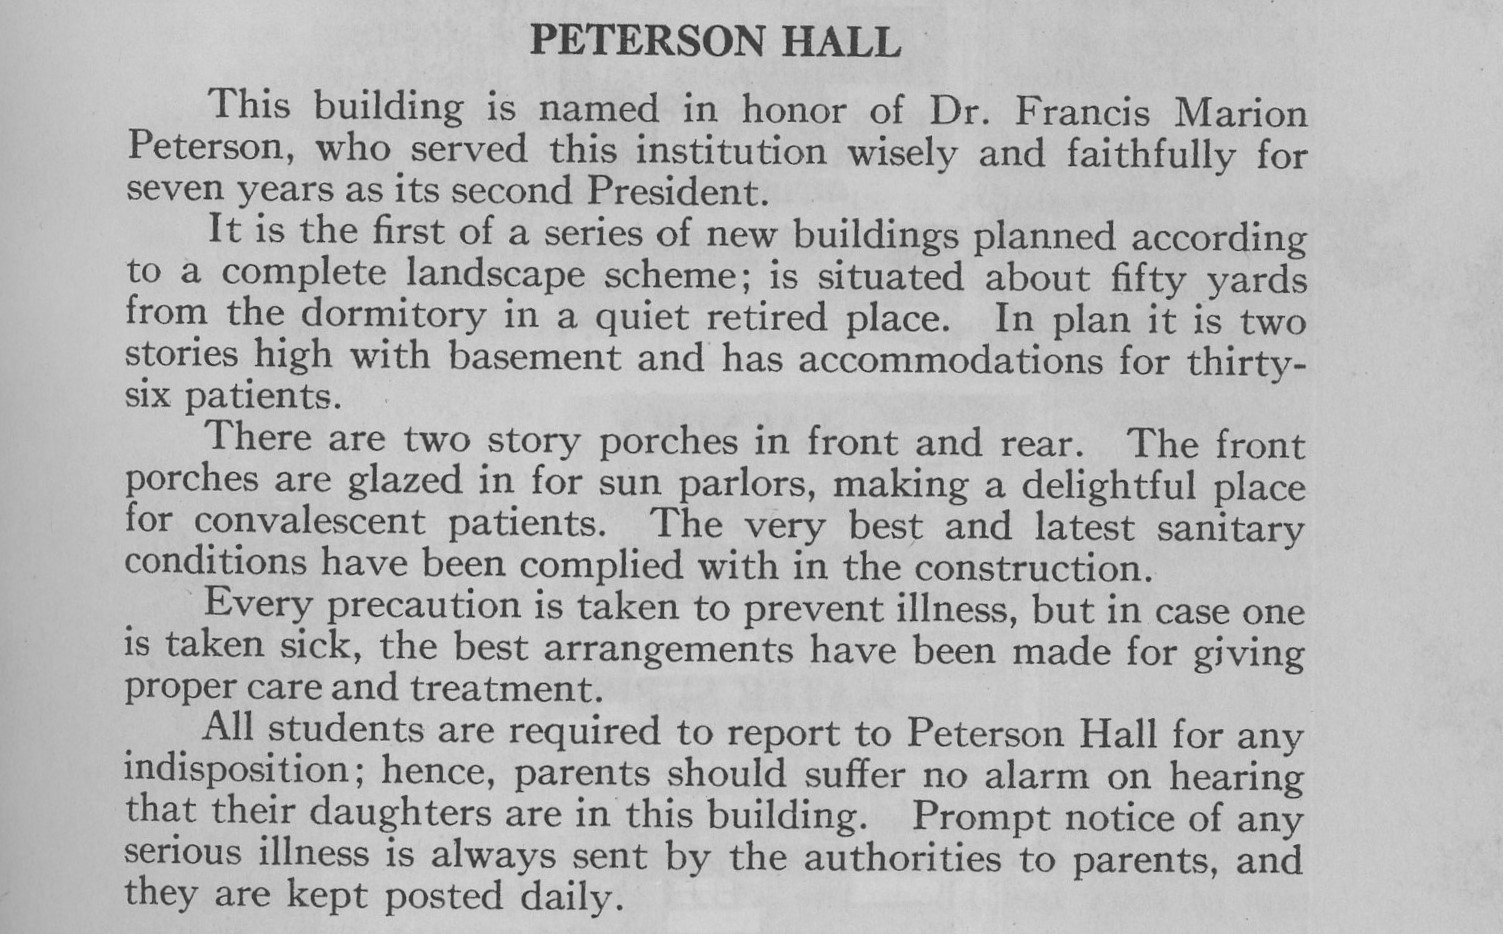 A description of Peterson Hall taken from the 1914-15 course catalog